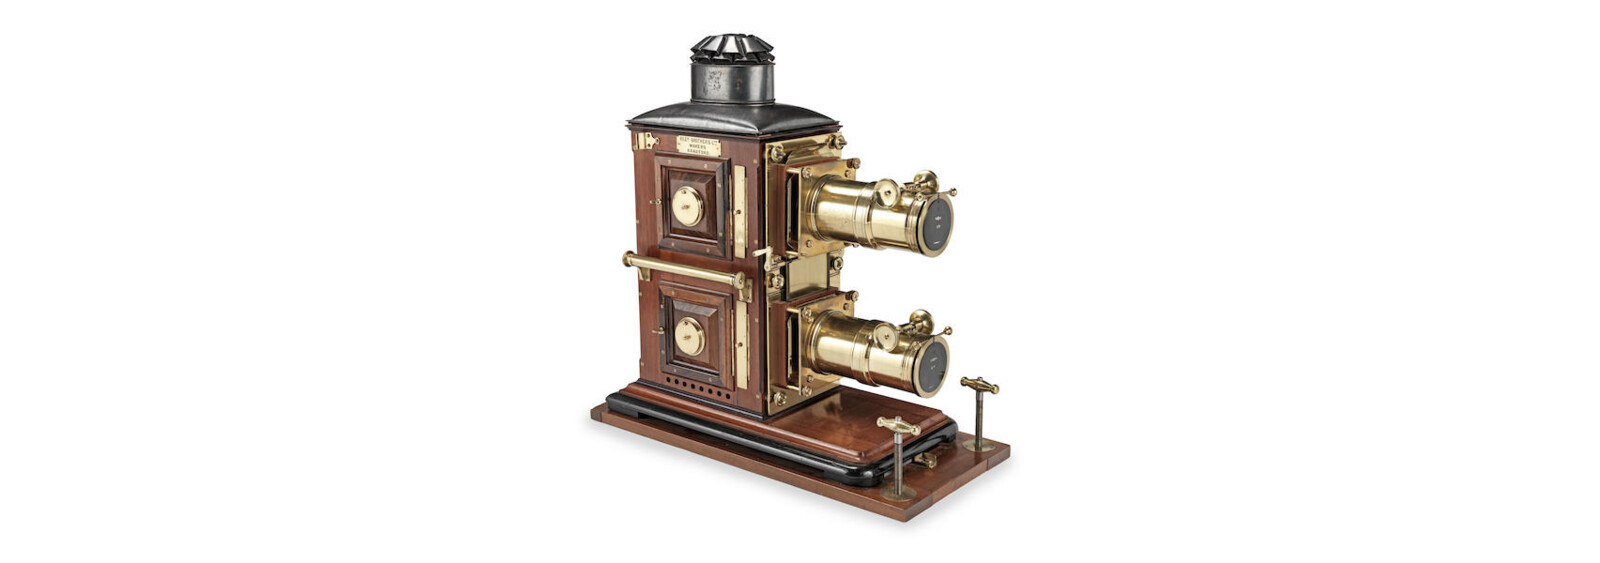 Reference - A fine Riley Brother Ltd bi-unial magic lantern, English, late 19th century,